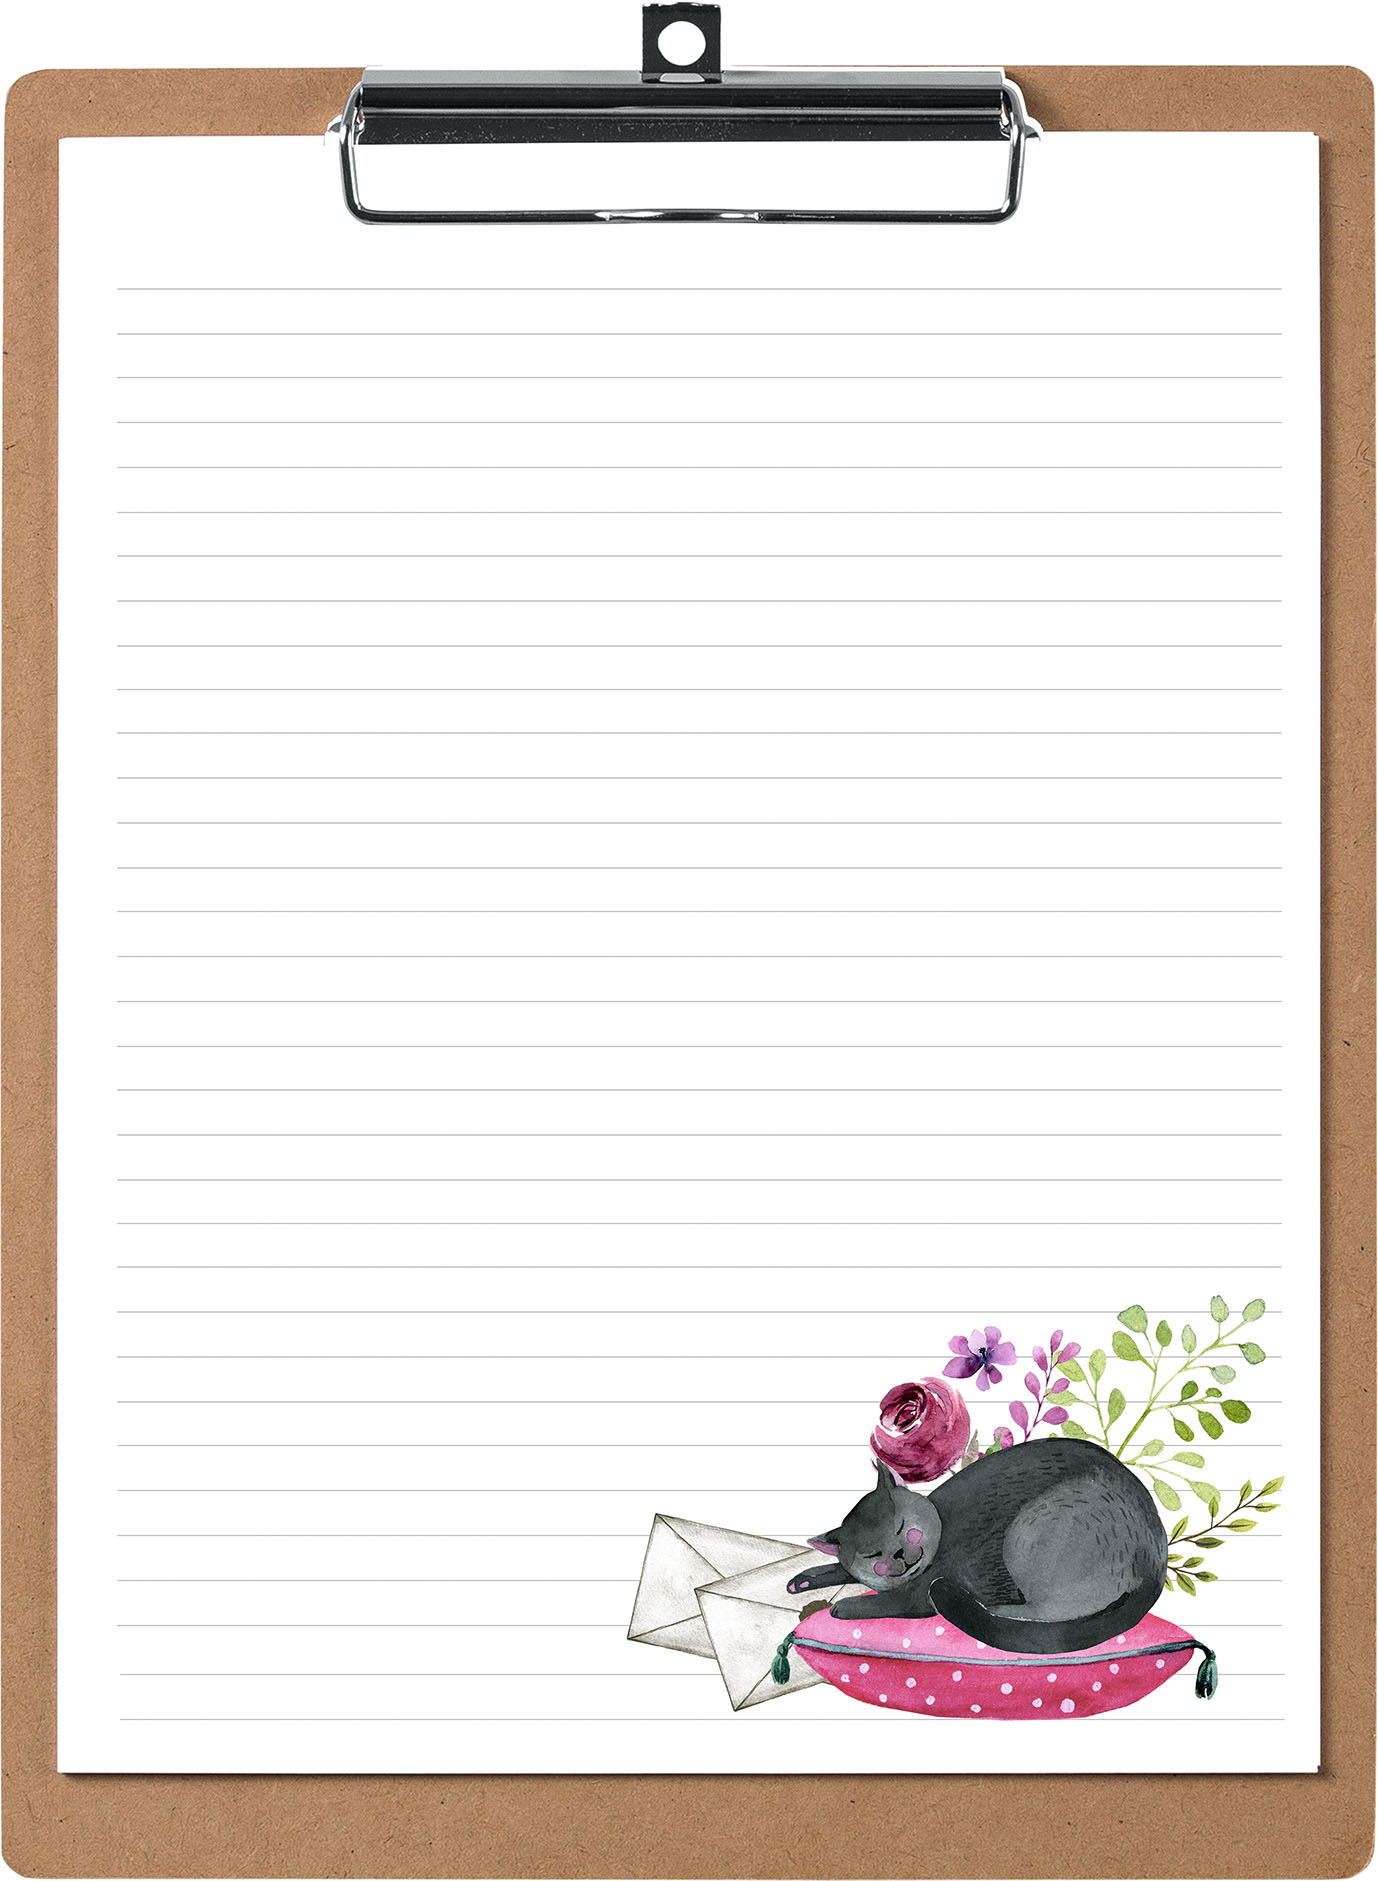 image about Lined Stationery Printable referred to as Cat Nap Printable Included Pen Friend Stationery 8.5 x 11 Snail Send out